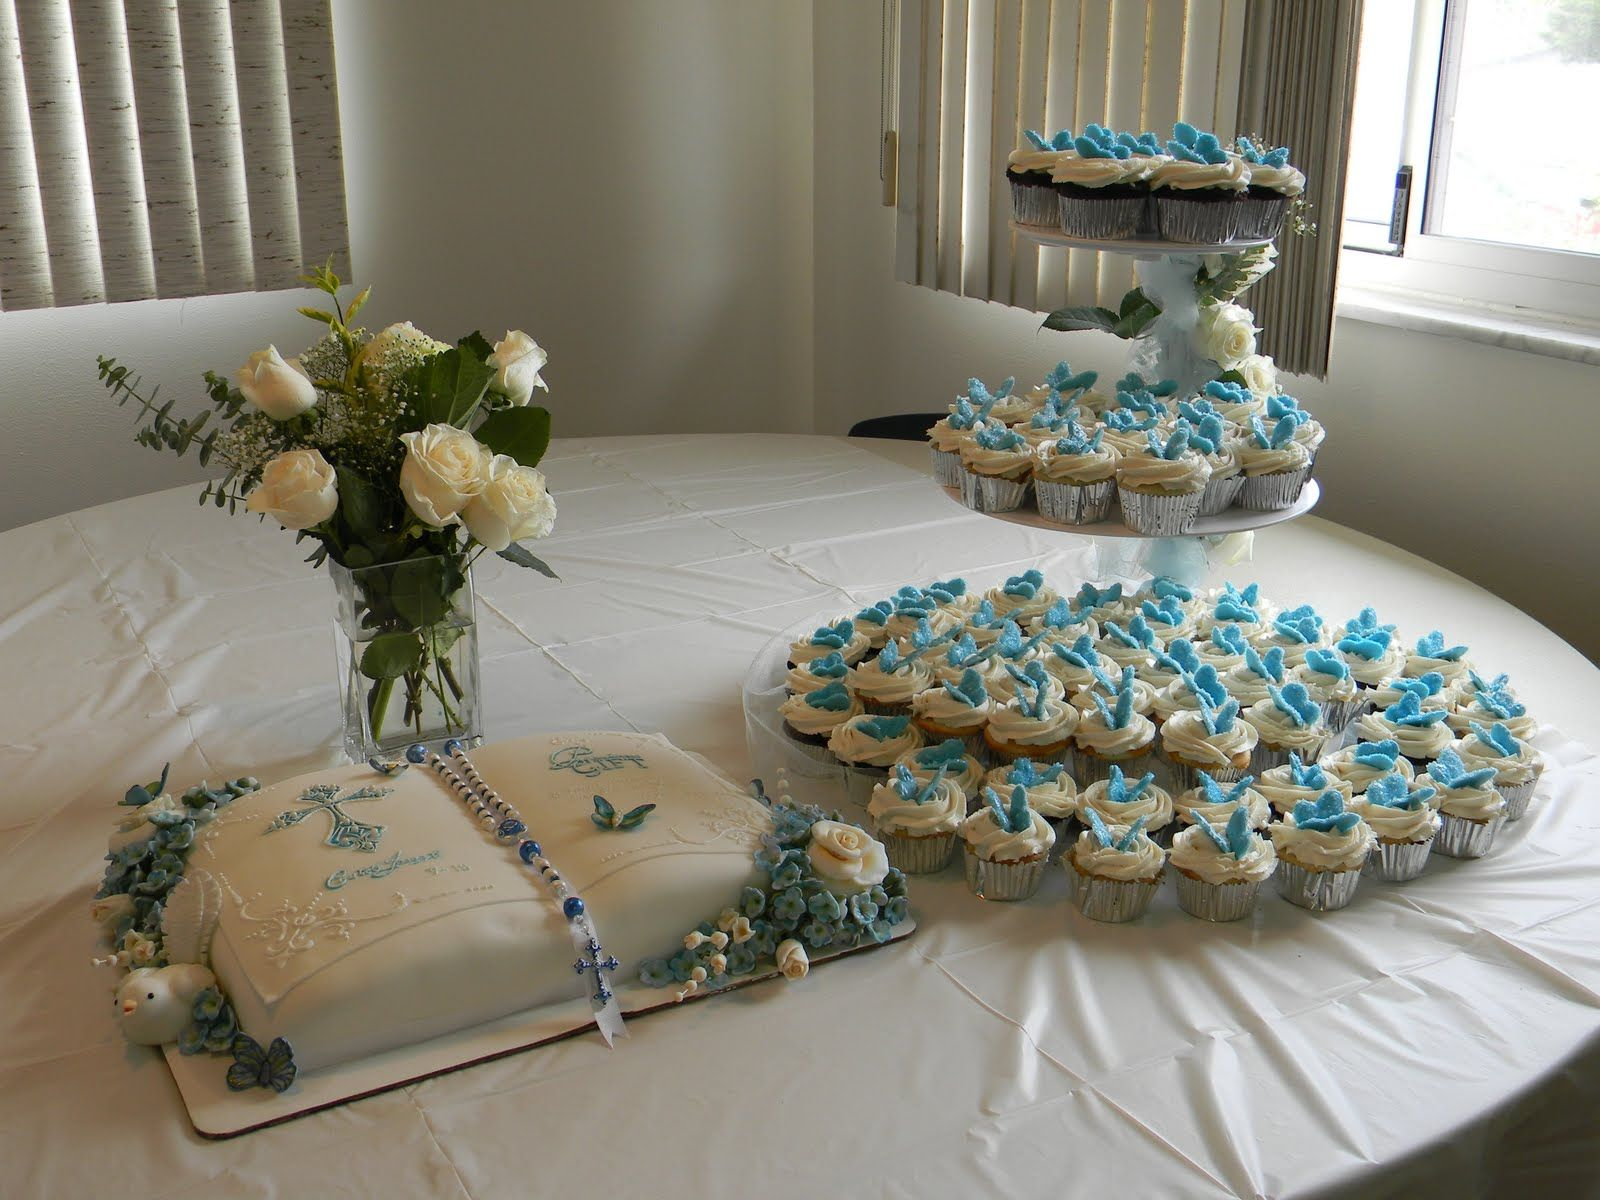 Couture Cakes By Angela Baptism Reception Cake Table Baptism Table Decorations Christening Table Decorations Baptism Table Centerpieces